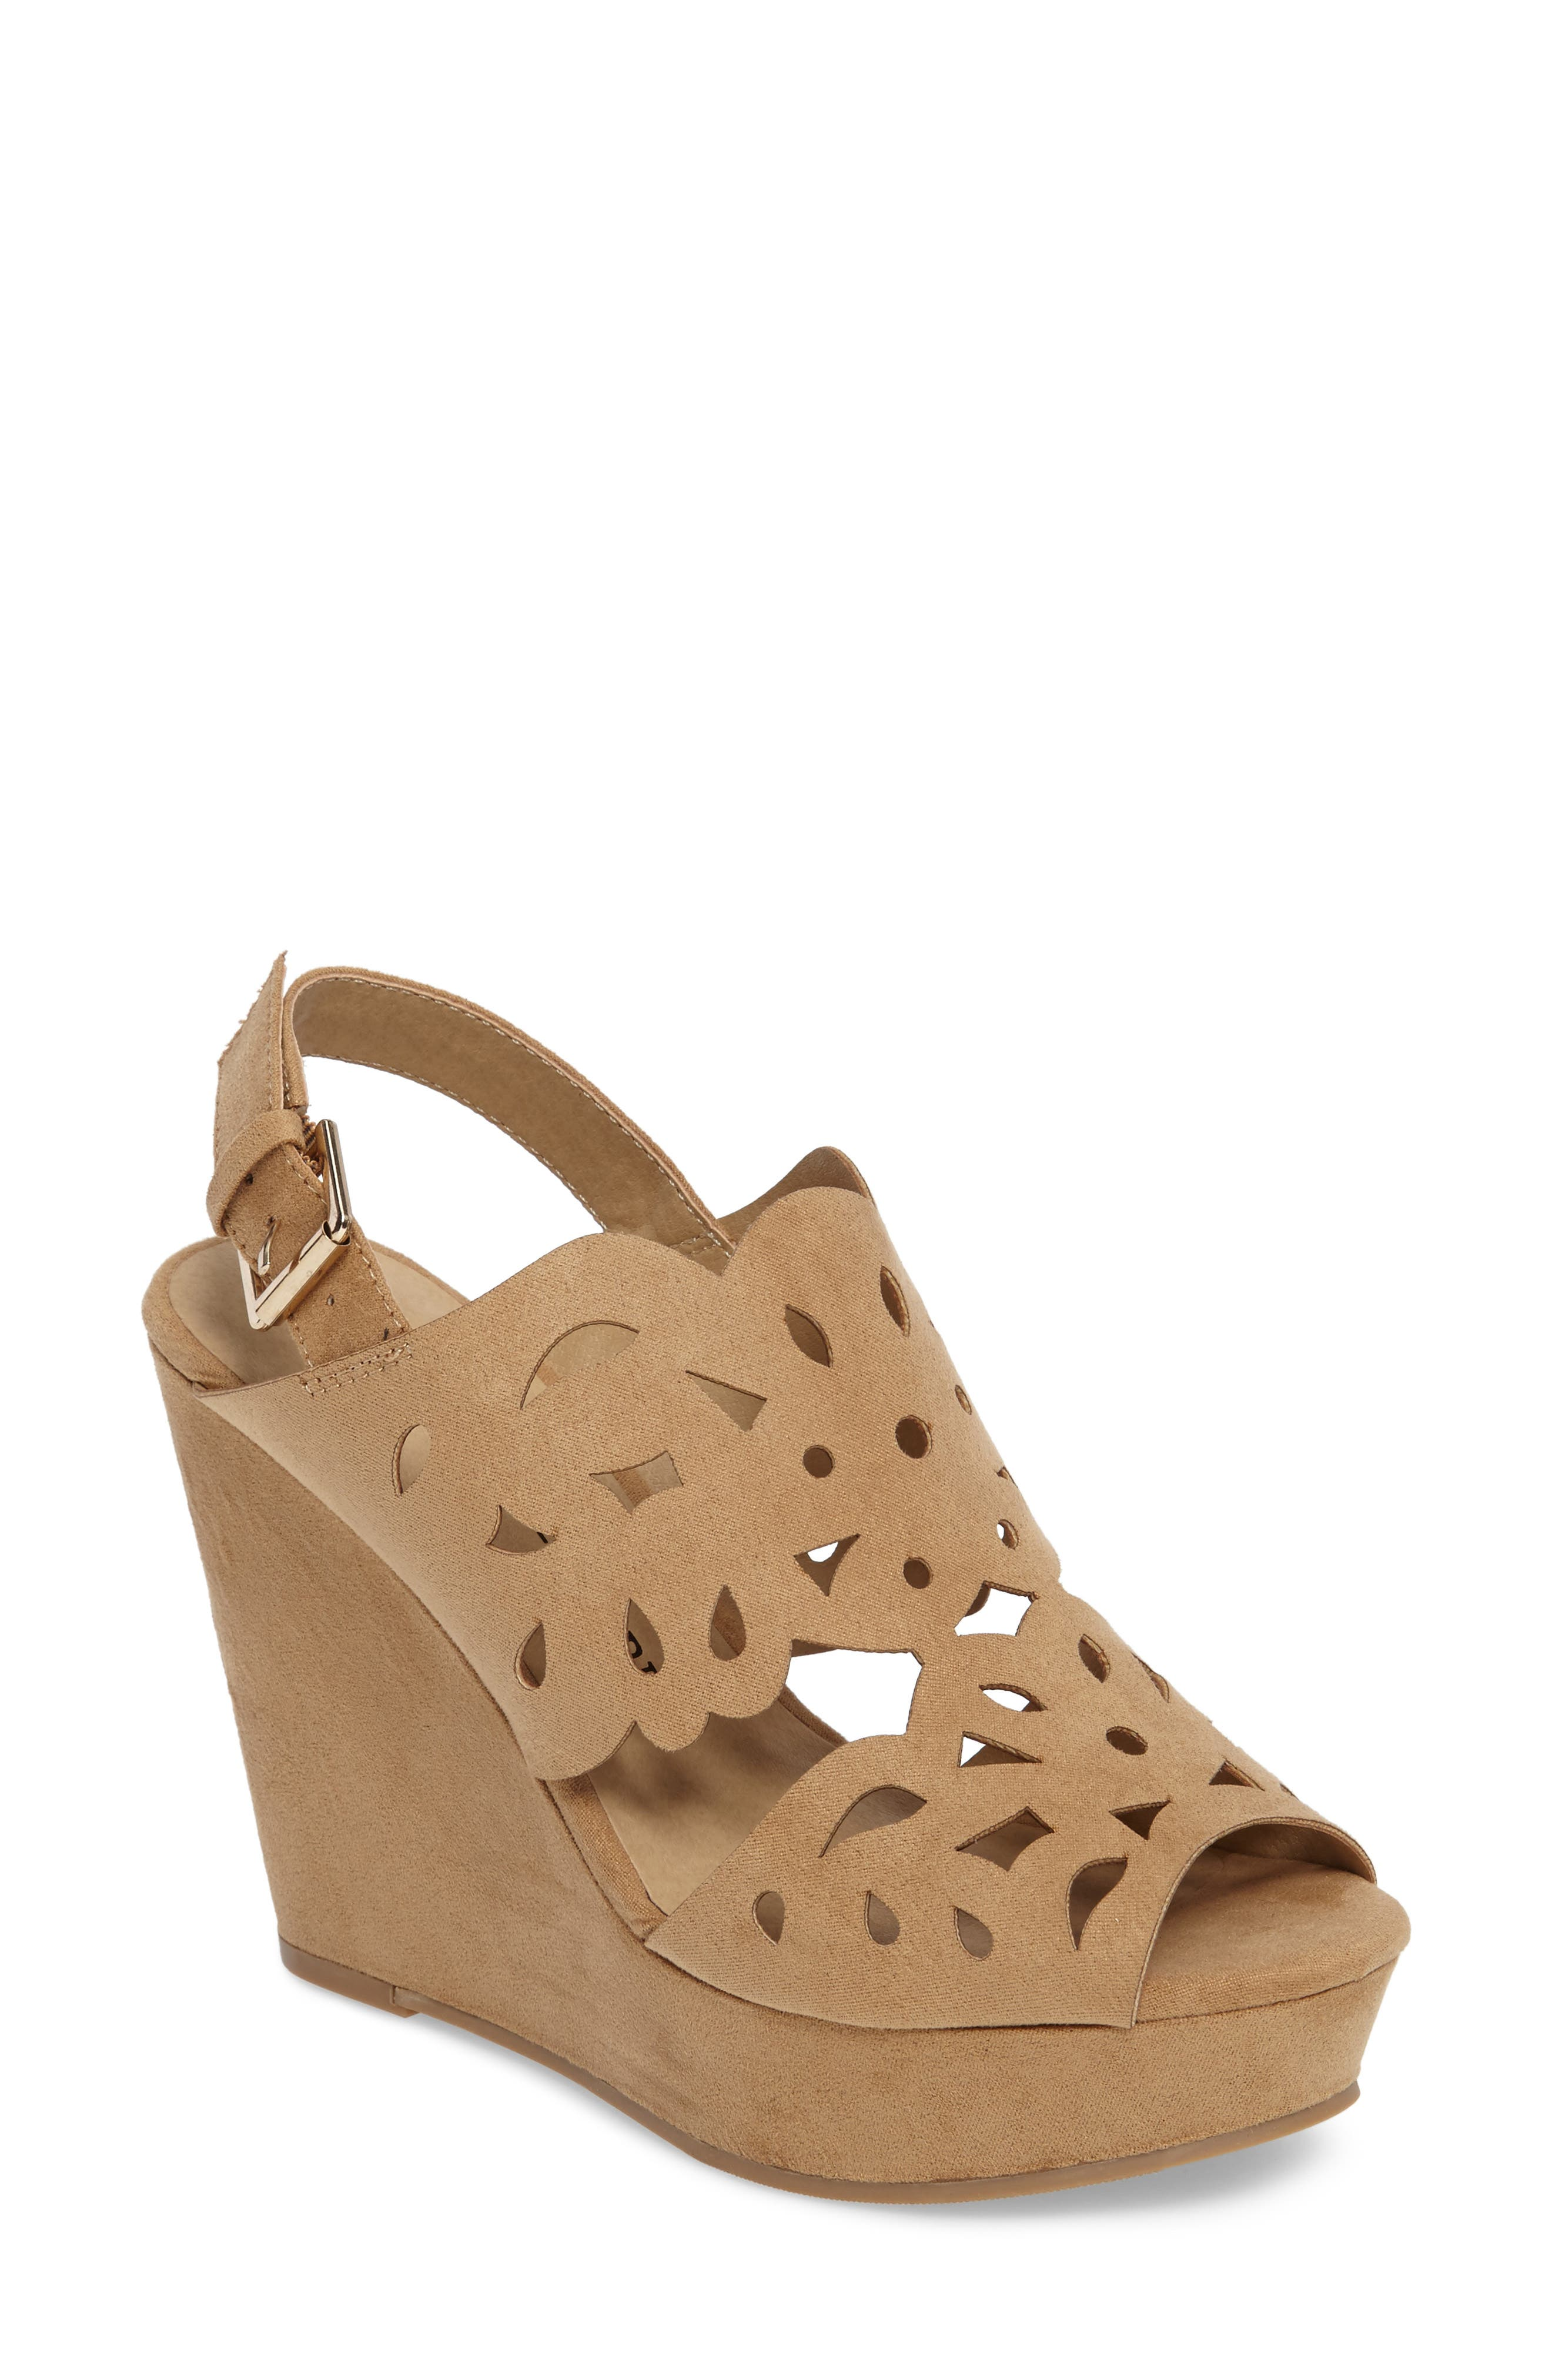 In Love Wedge Sandal,                             Main thumbnail 1, color,                             Light Camel Suede